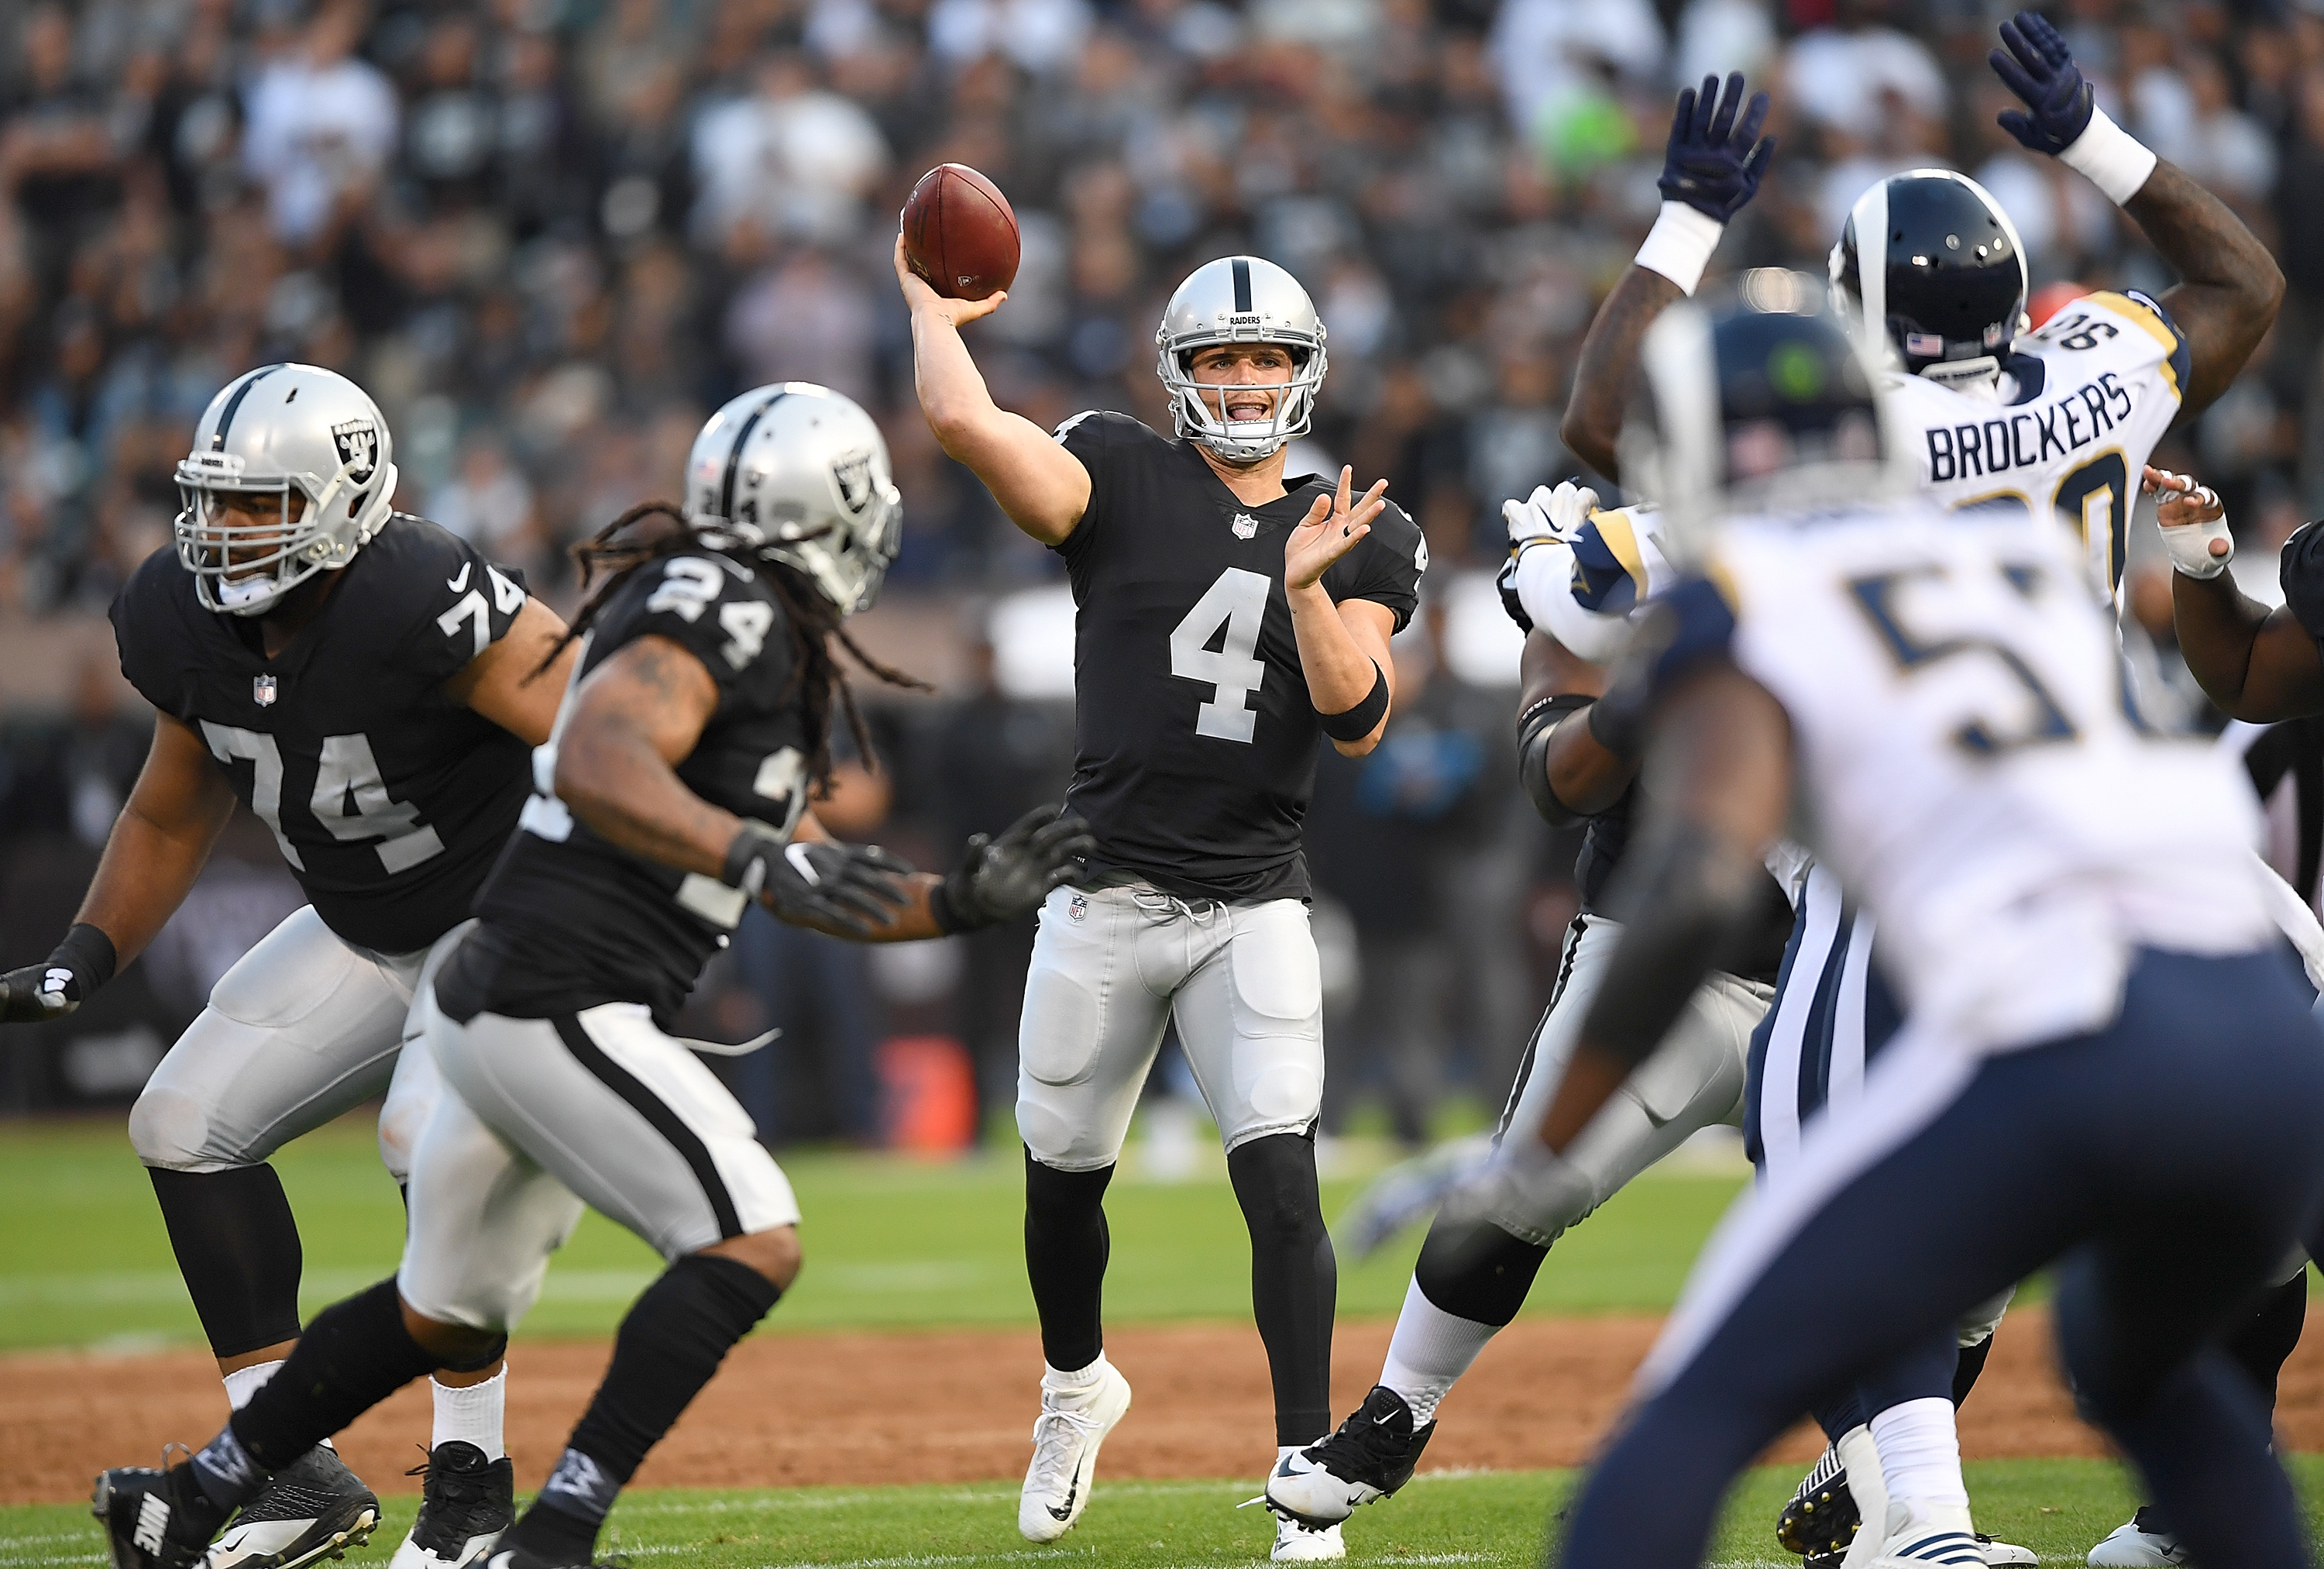 Of The Oakland Raiders Looks To Throw A Pagainst The Los Angeles Rams During The First Quarter Of Their Preseason Nfl Football Game At